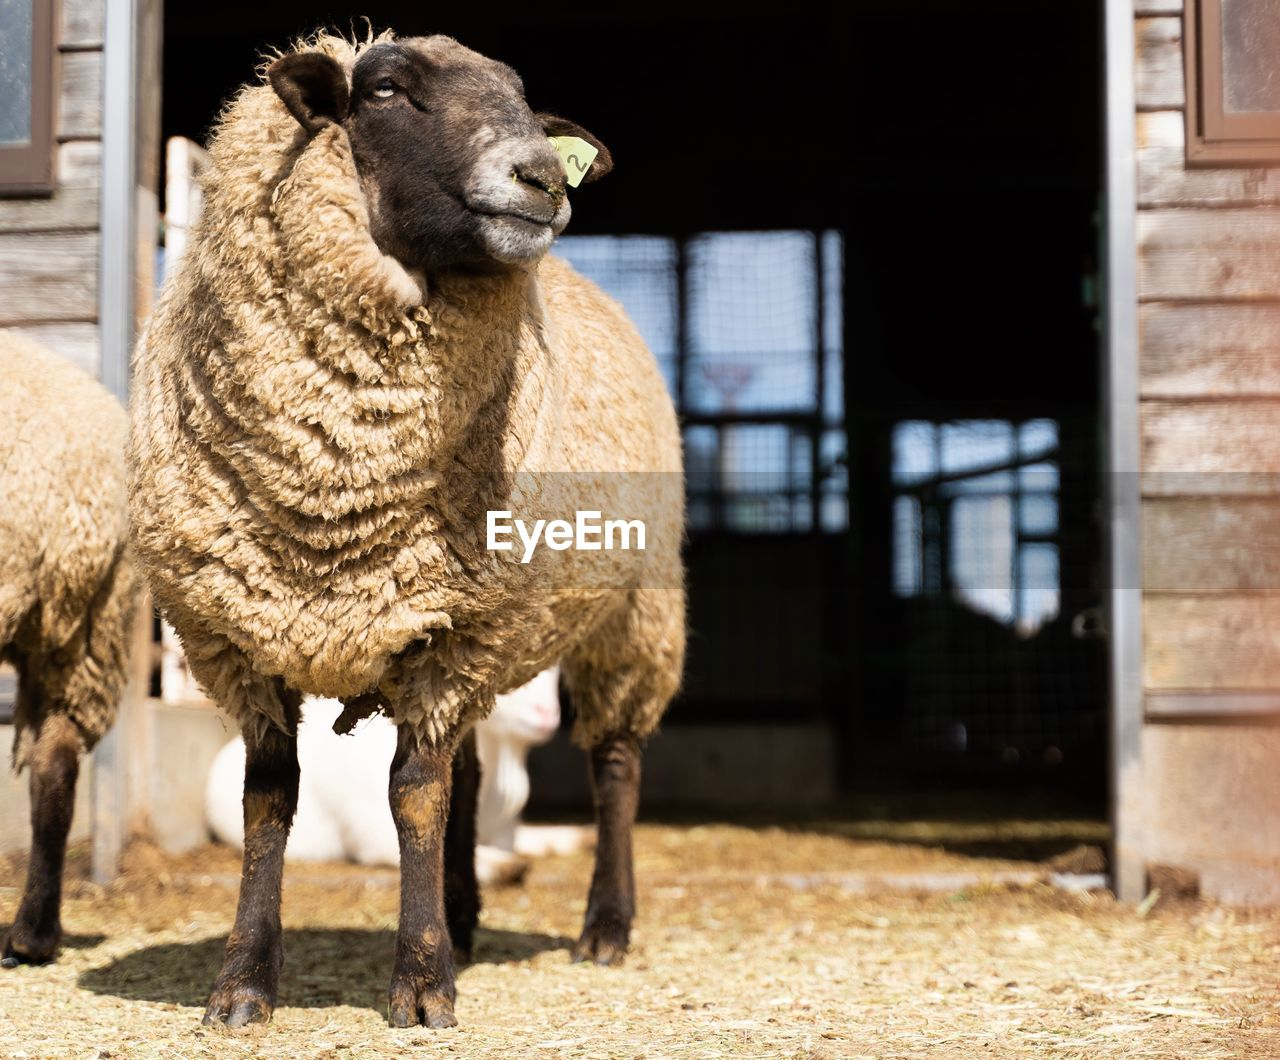 animal themes, mammal, animal, domestic animals, pets, livestock, vertebrate, domestic, one animal, sheep, day, standing, focus on foreground, architecture, no people, animal wildlife, building exterior, outdoors, built structure, nature, herbivorous